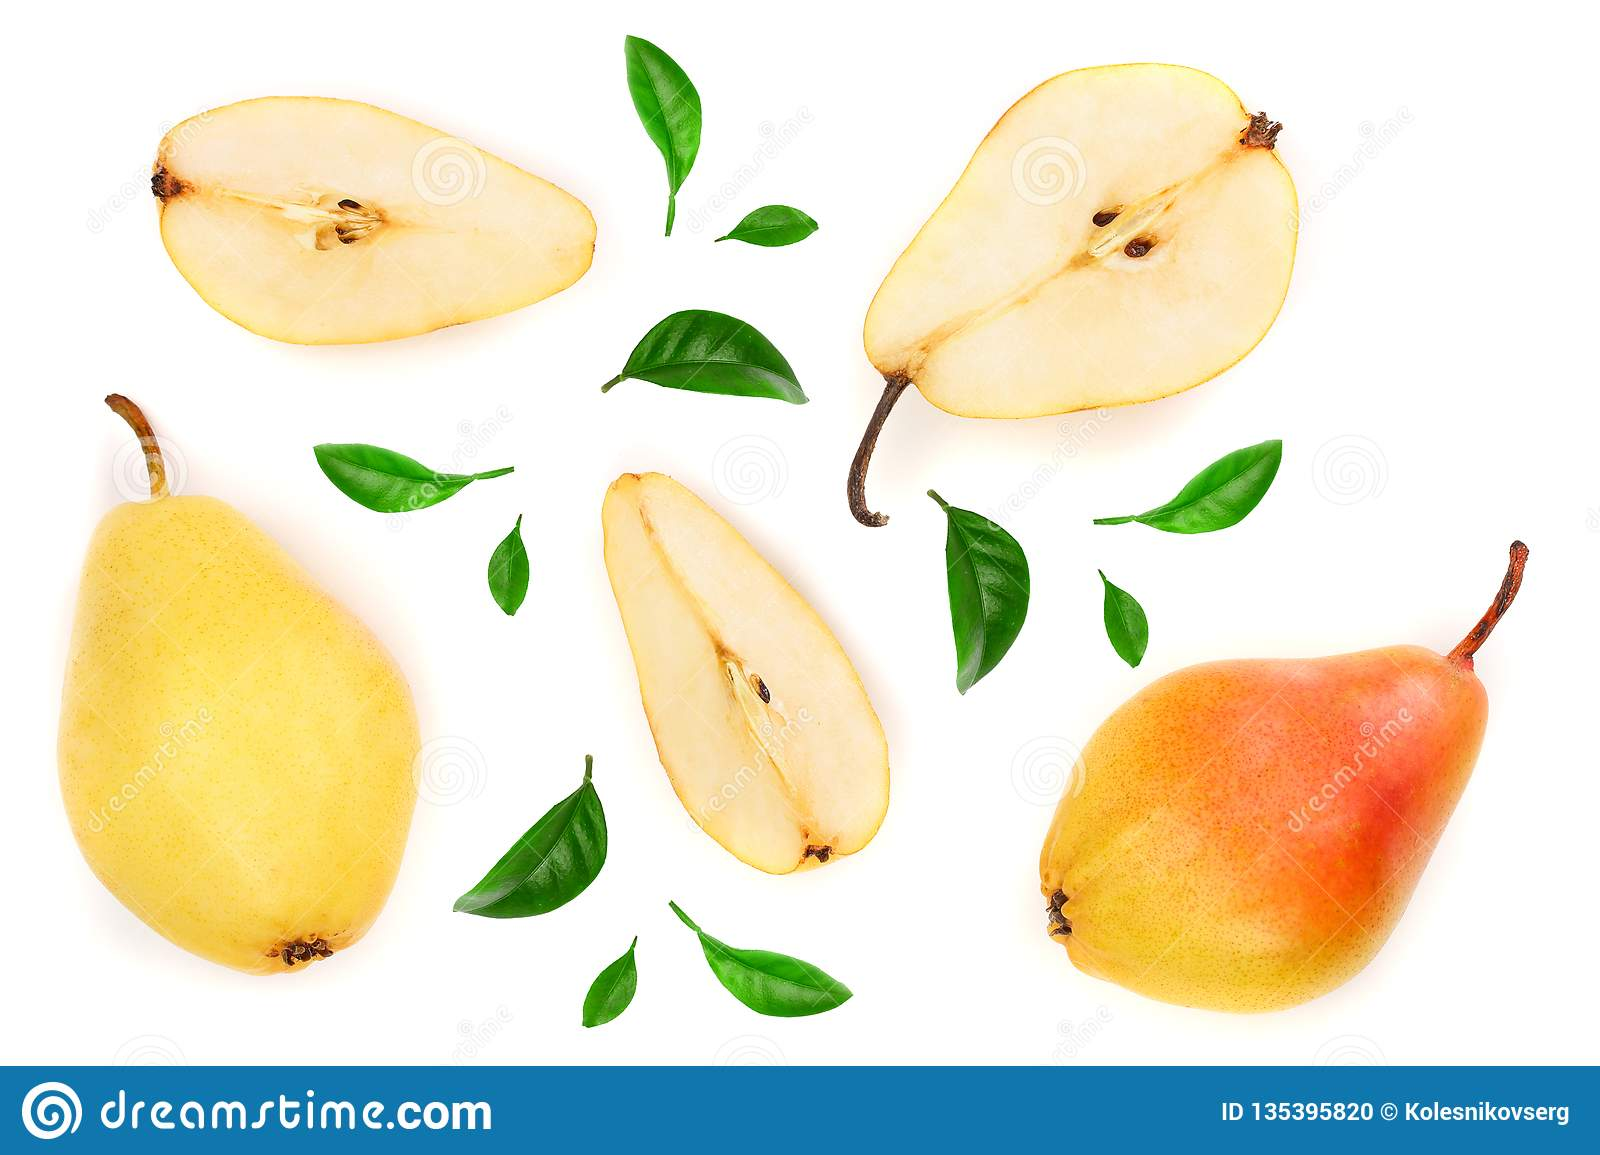 Three Ripe Red Yellow Pear Fruits With Leaf Isolated On